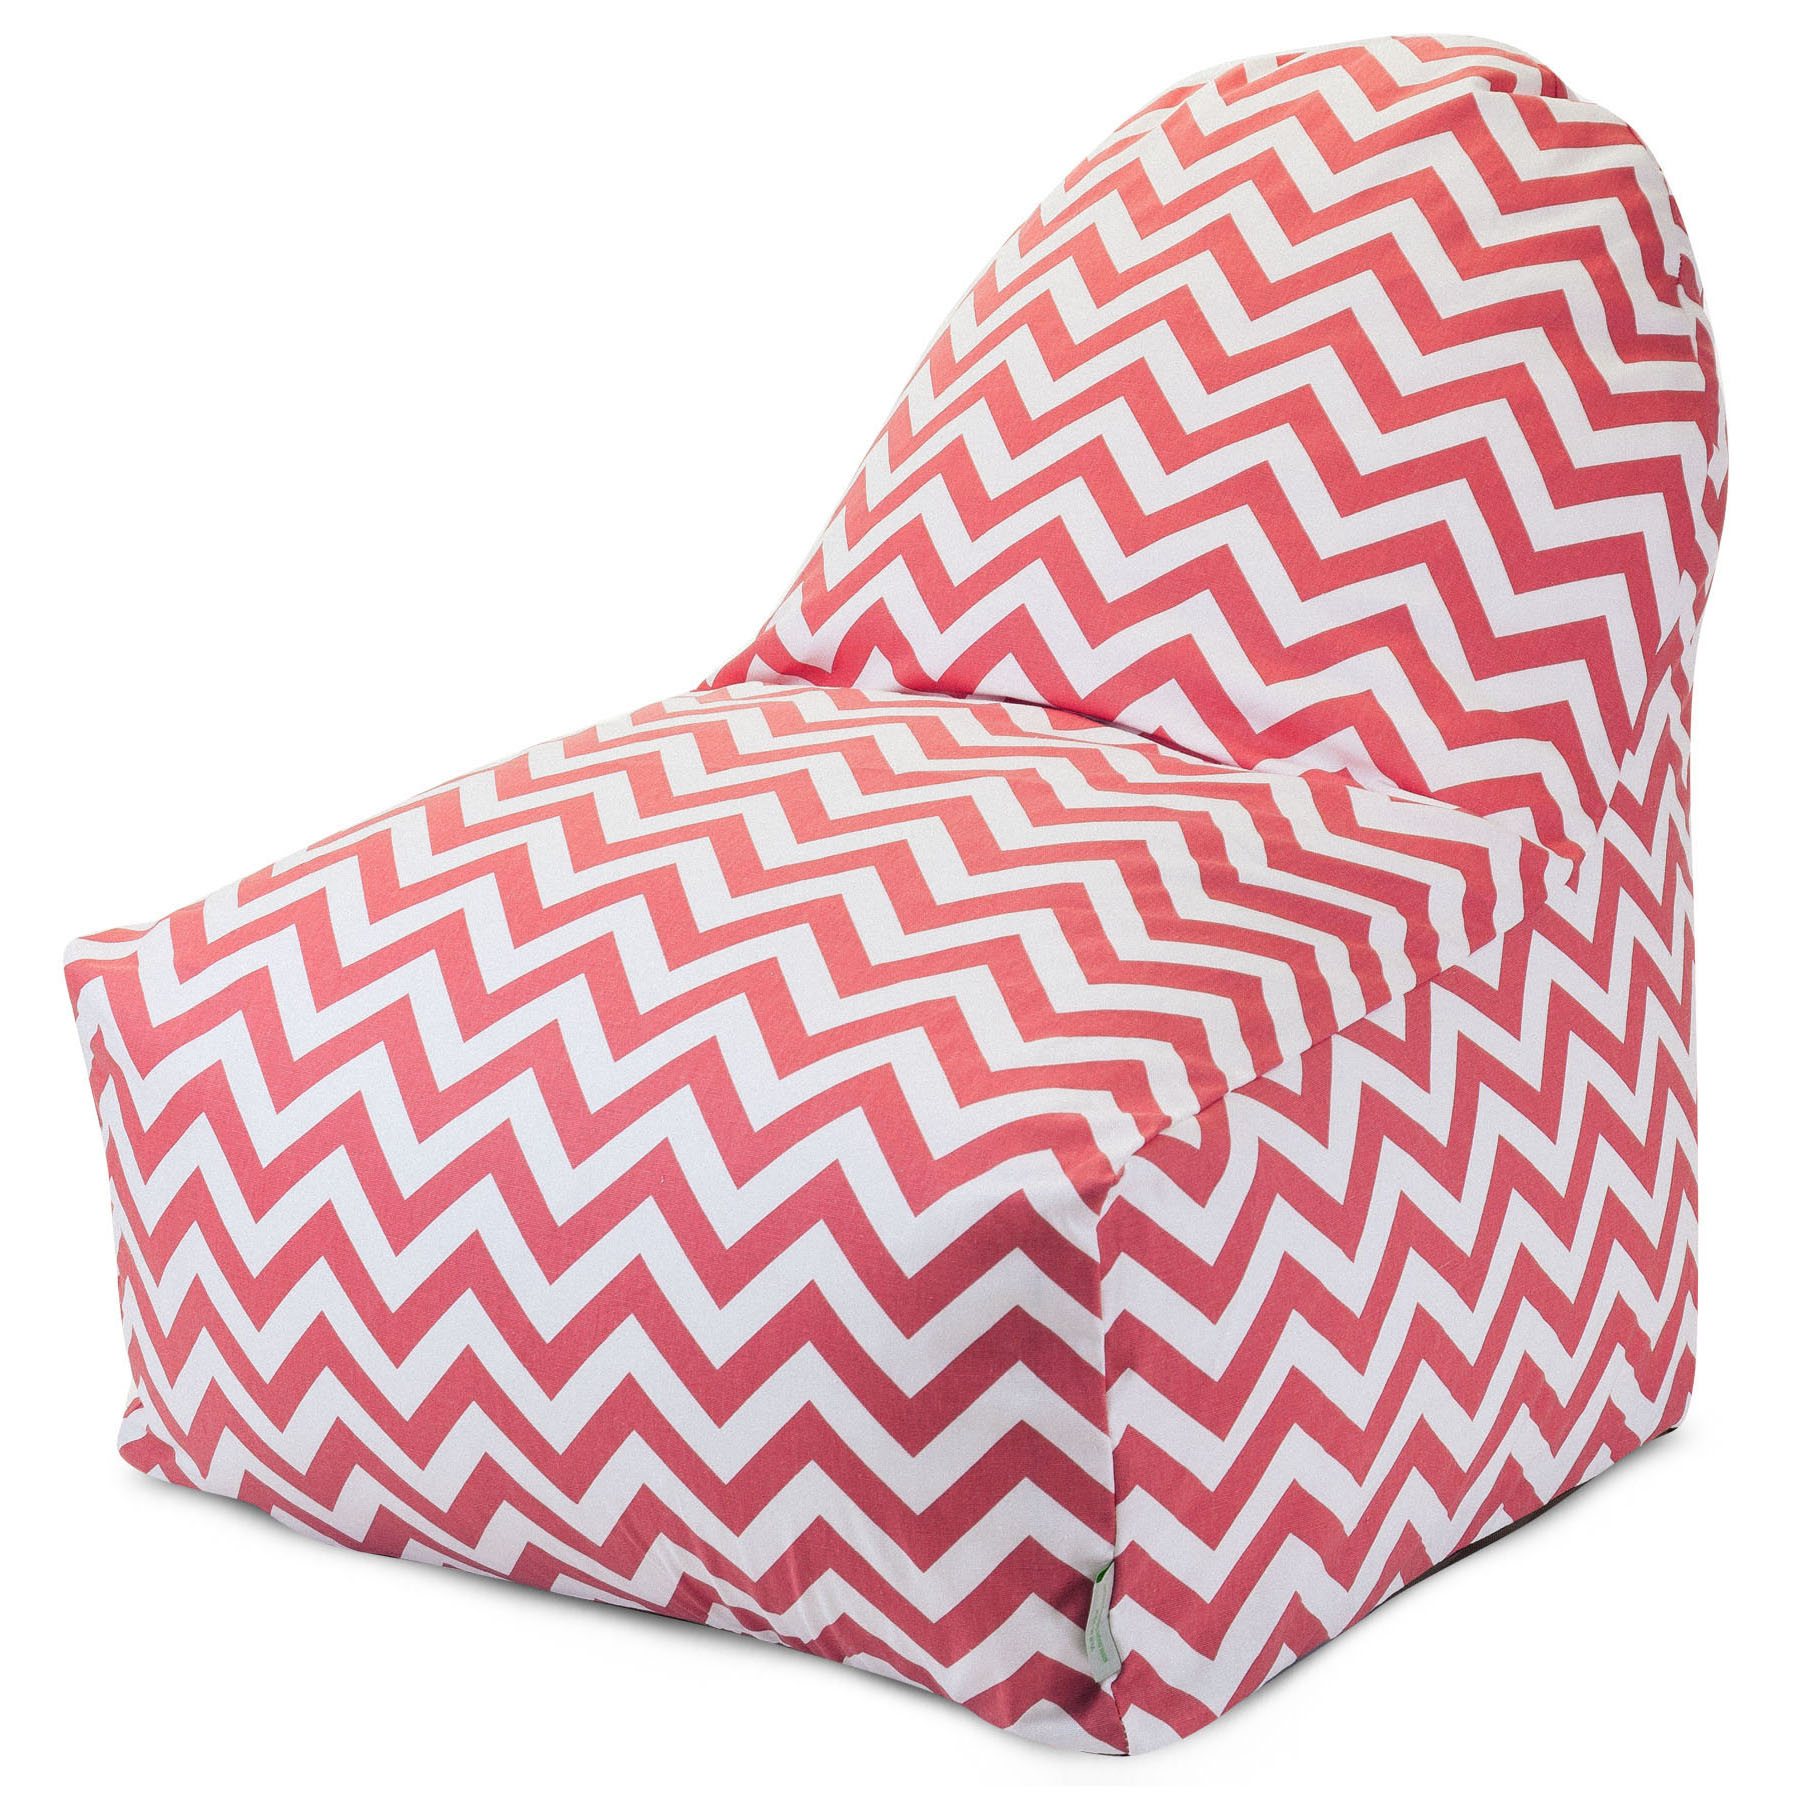 Majestic Home Goods Indoor Coral Chevron Bean Bag Kick-it Chair 30 in L x 26 in W x 30 in H